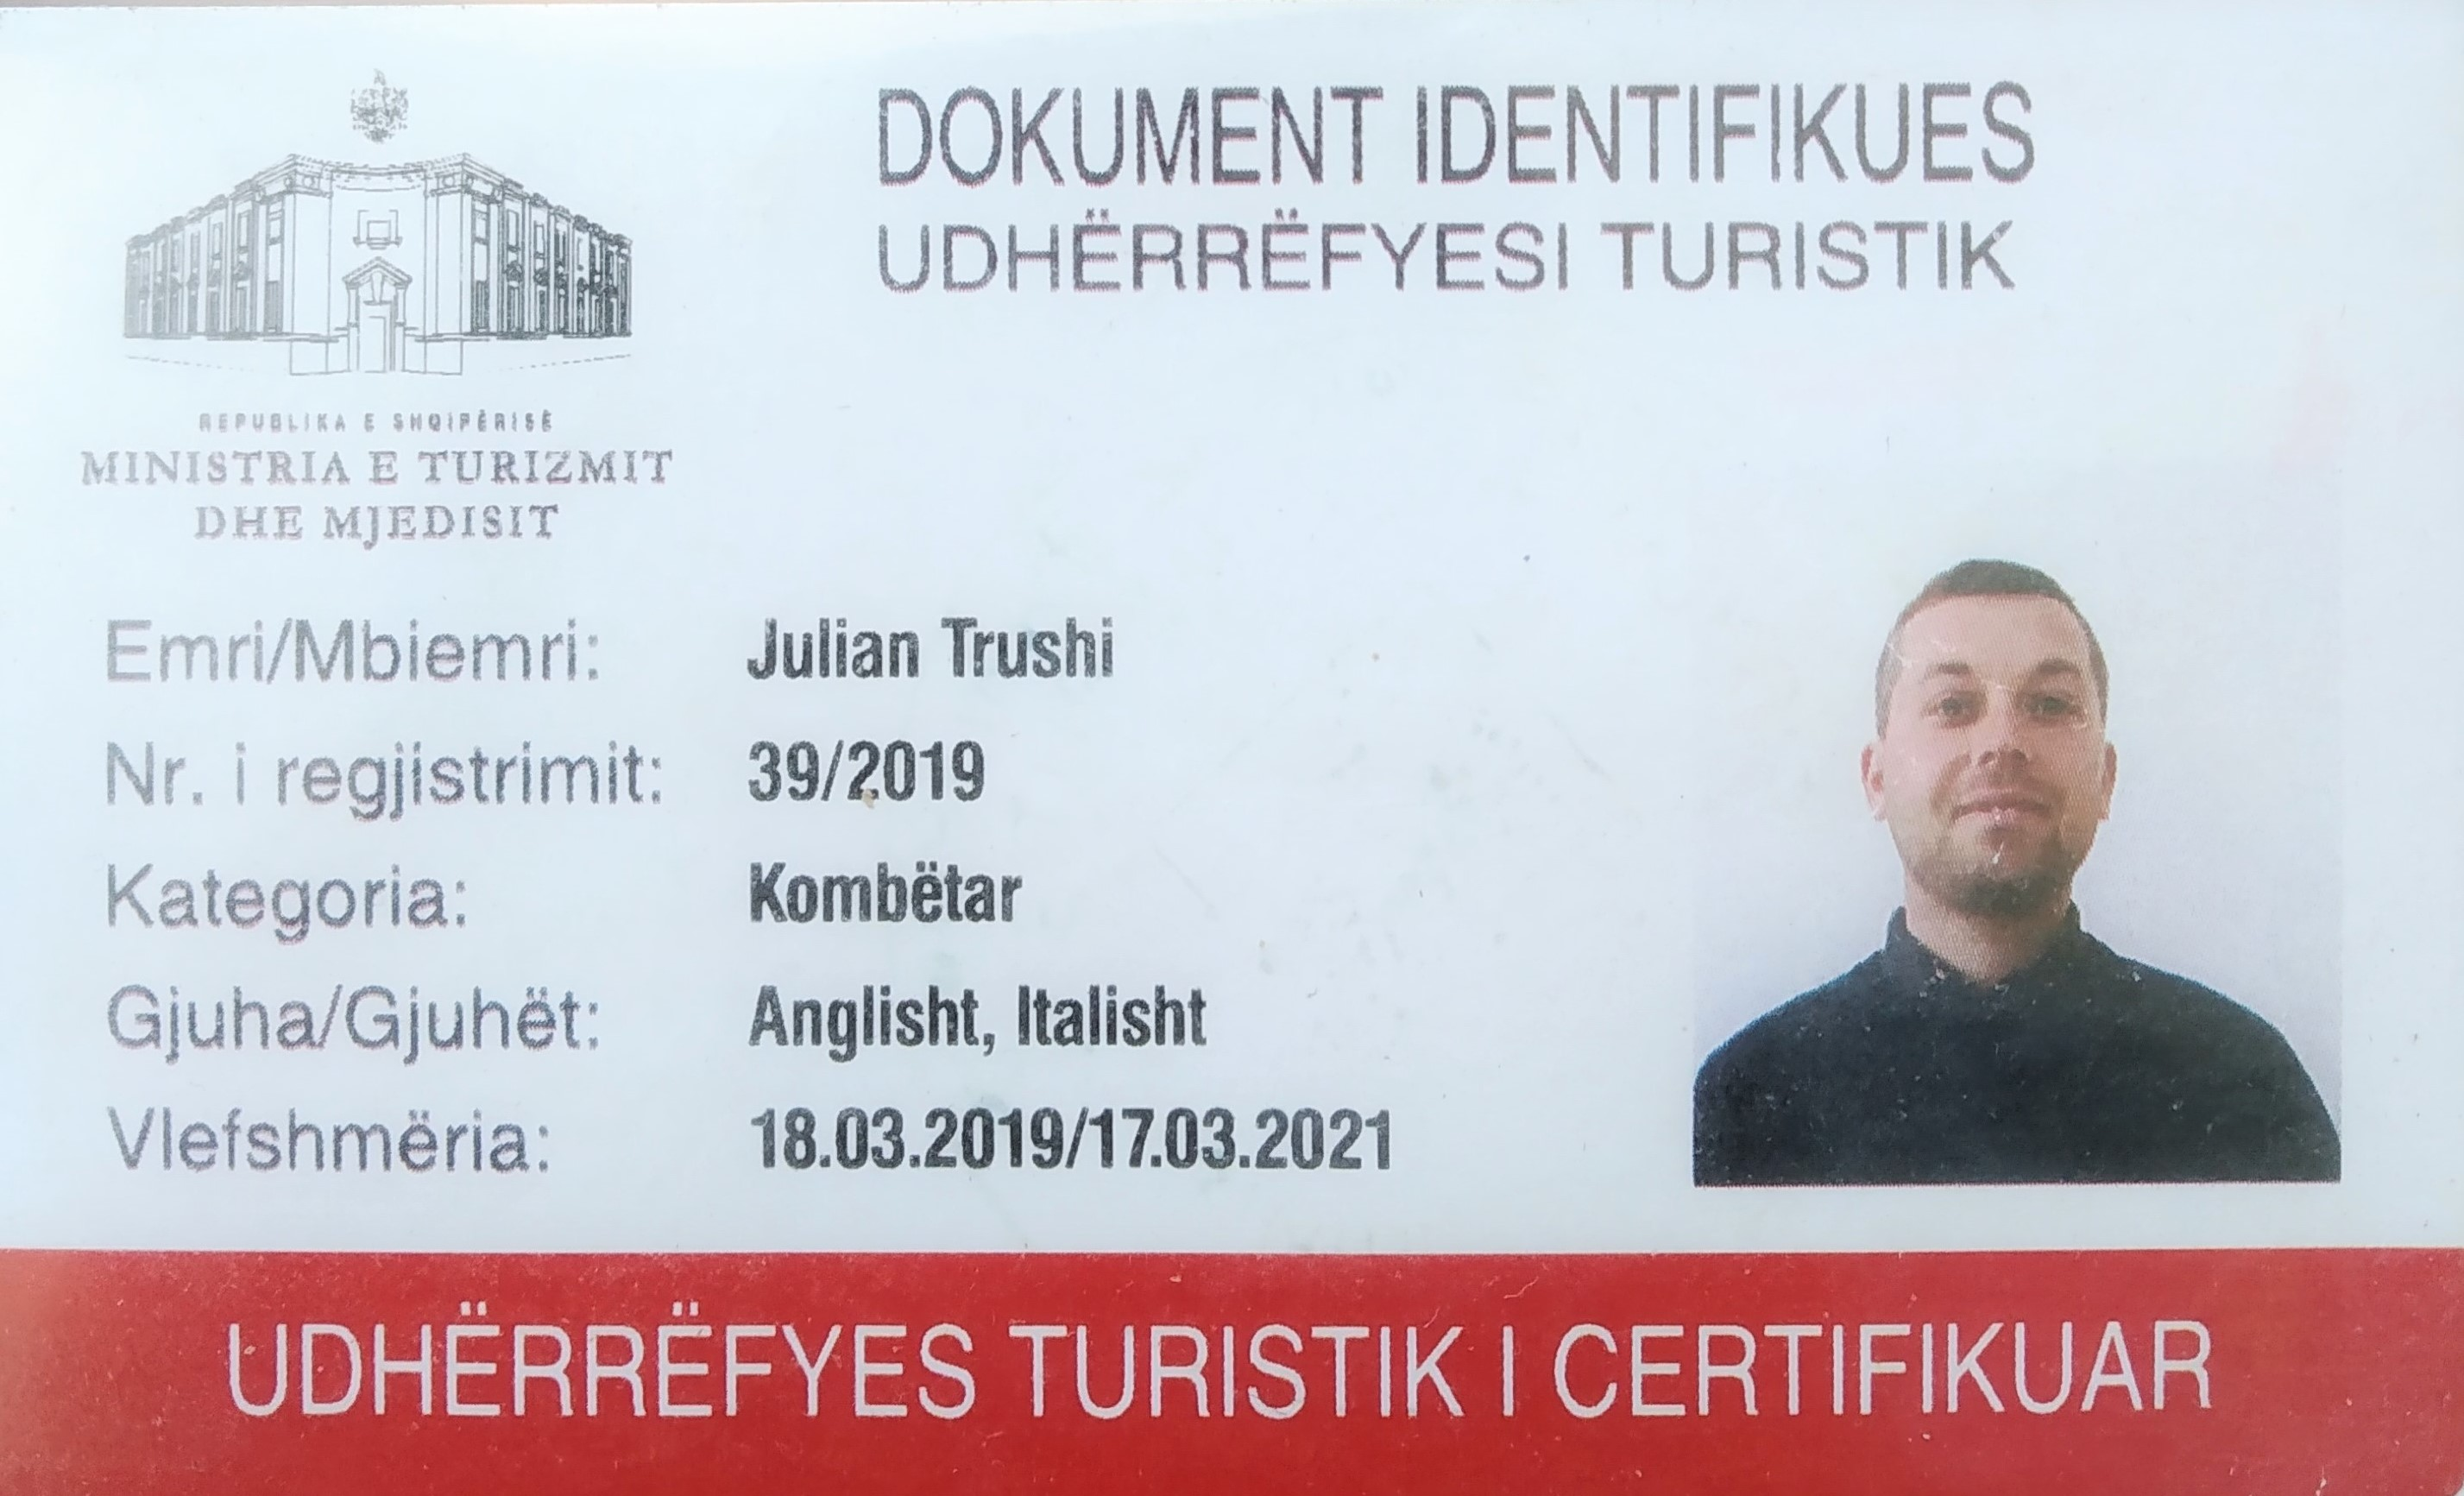 Qualified Tour Guide